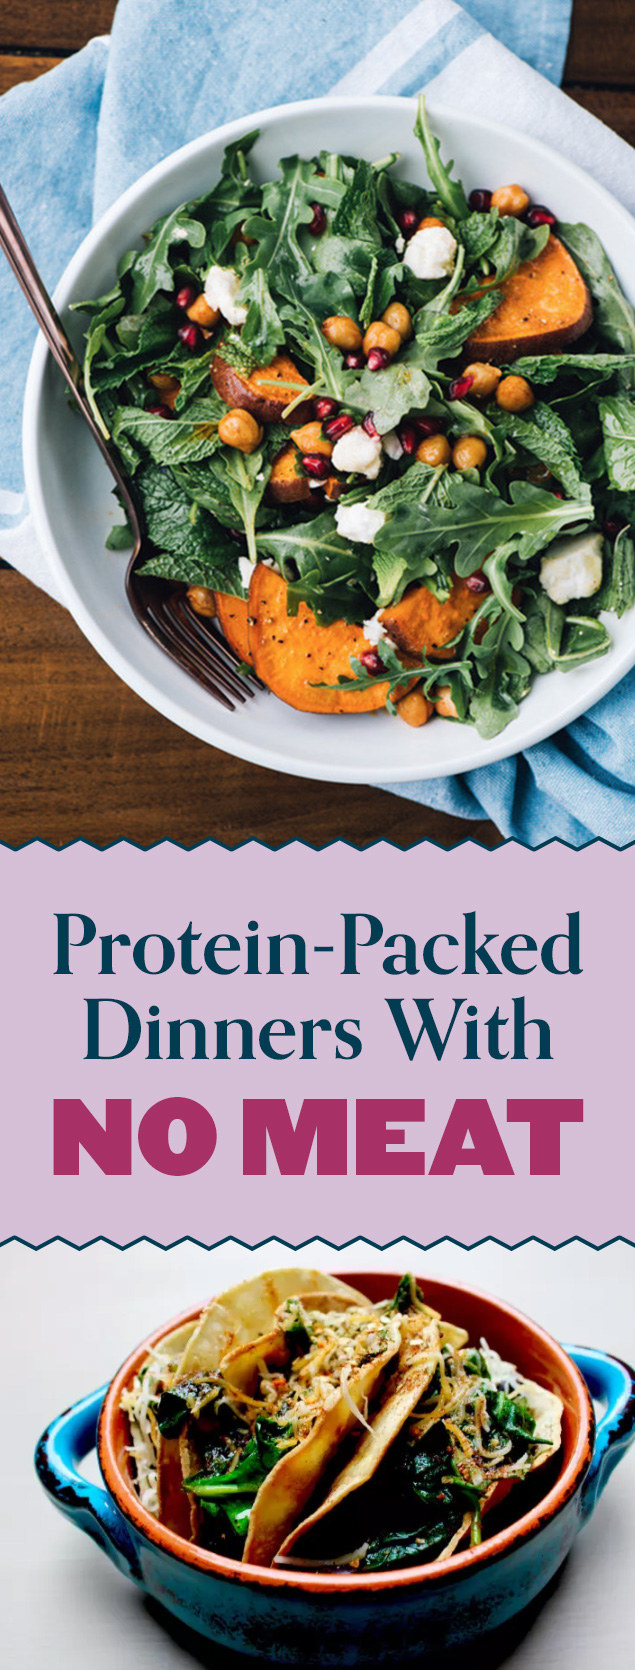 17 High-Protein Meatless Dinners You Need In Your Life Right Now